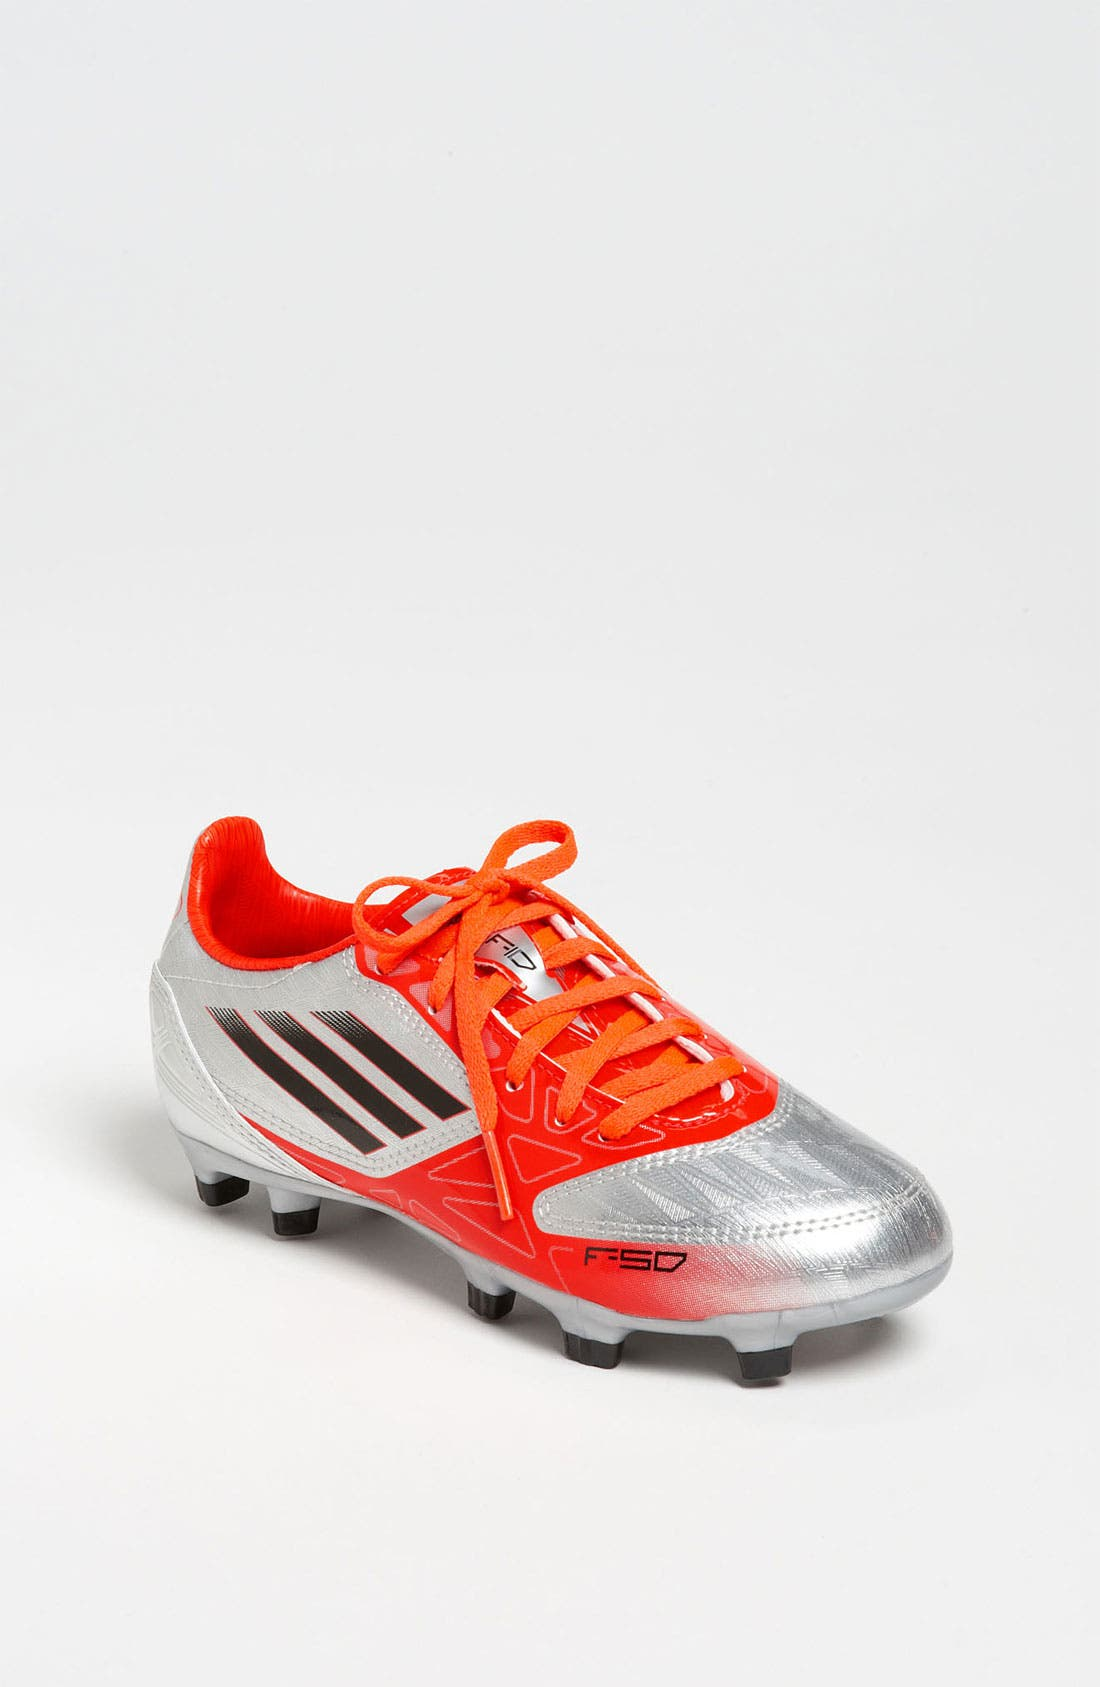 Alternate Image 1 Selected - adidas 'TRX FG' Soccer Cleats (Toddler, Little Kid & Big Kid)